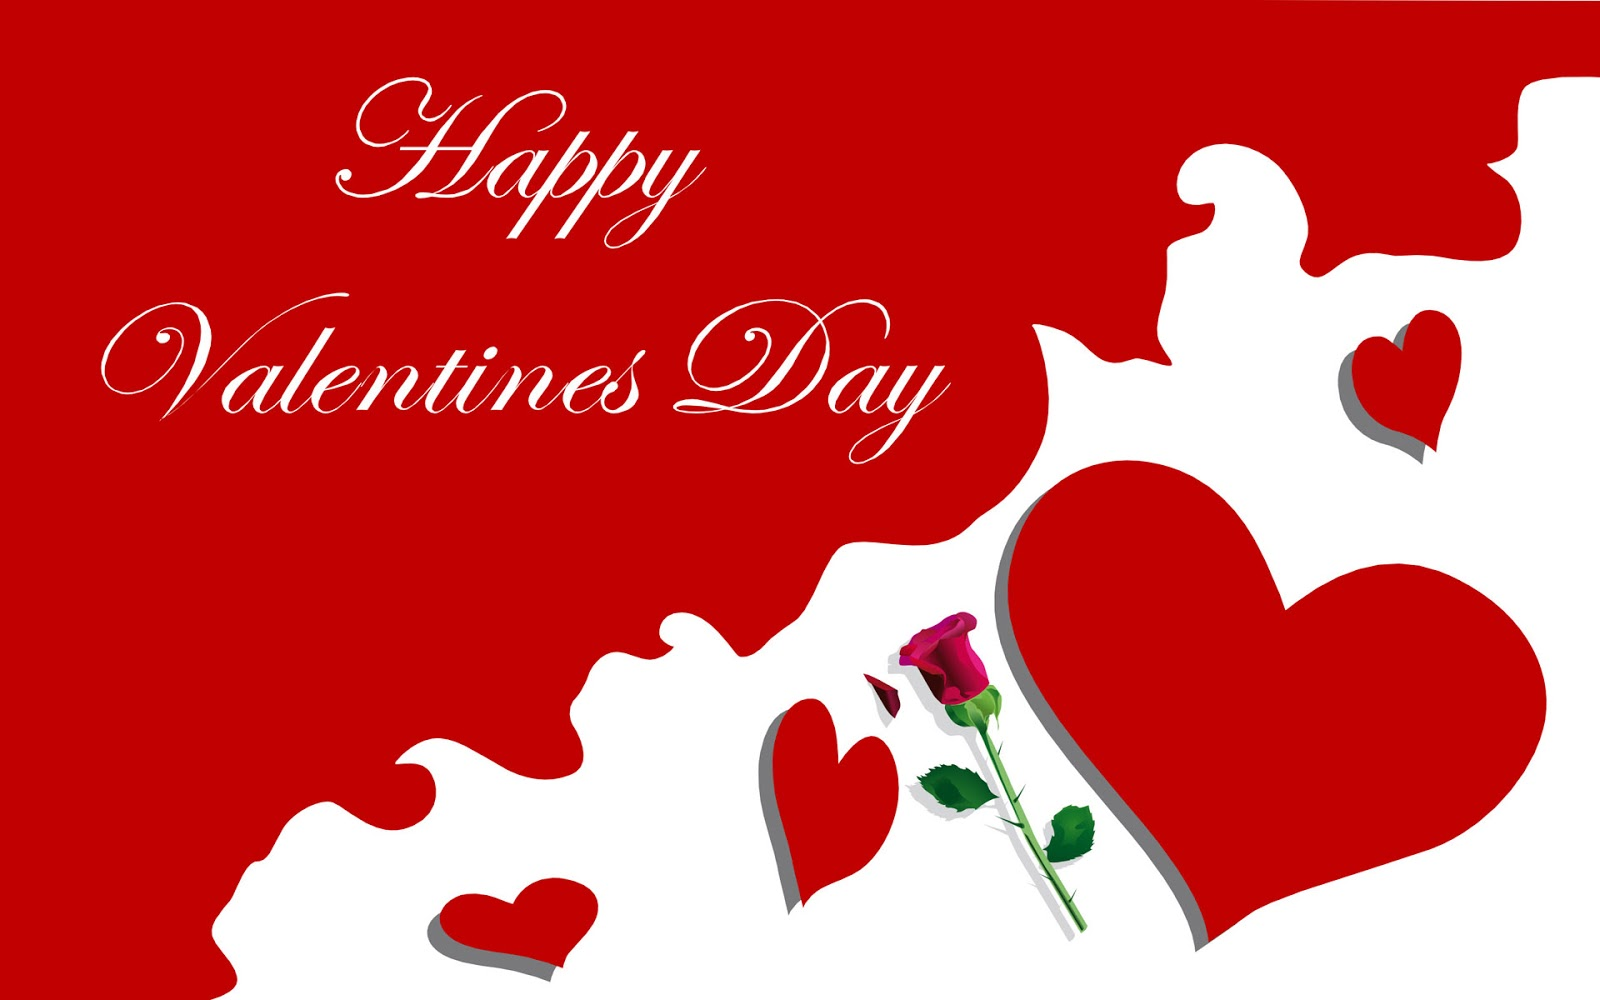 Happy Valentines Day Cards Greeting Wishes 2017 – Pictures of Valentine Day Cards